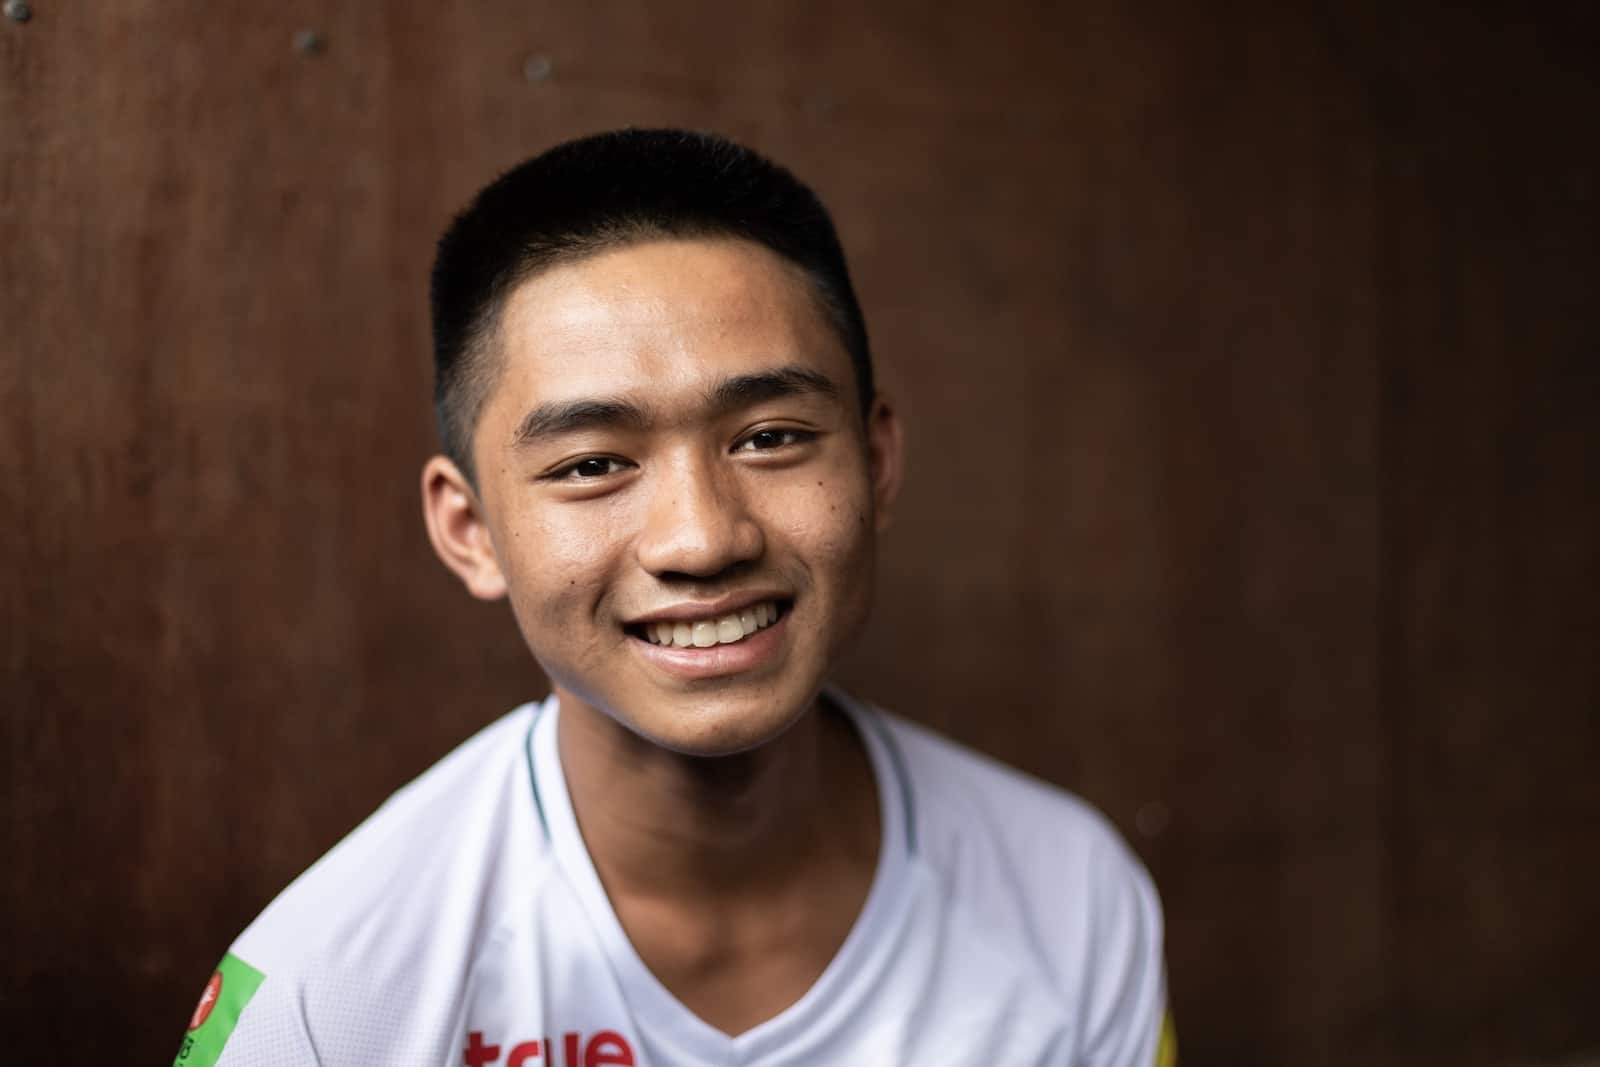 A teenage boy, Adun who was part of the Thailand cave rescue, wears a white shirt smiles at the camera. He sits in front of a brown background.